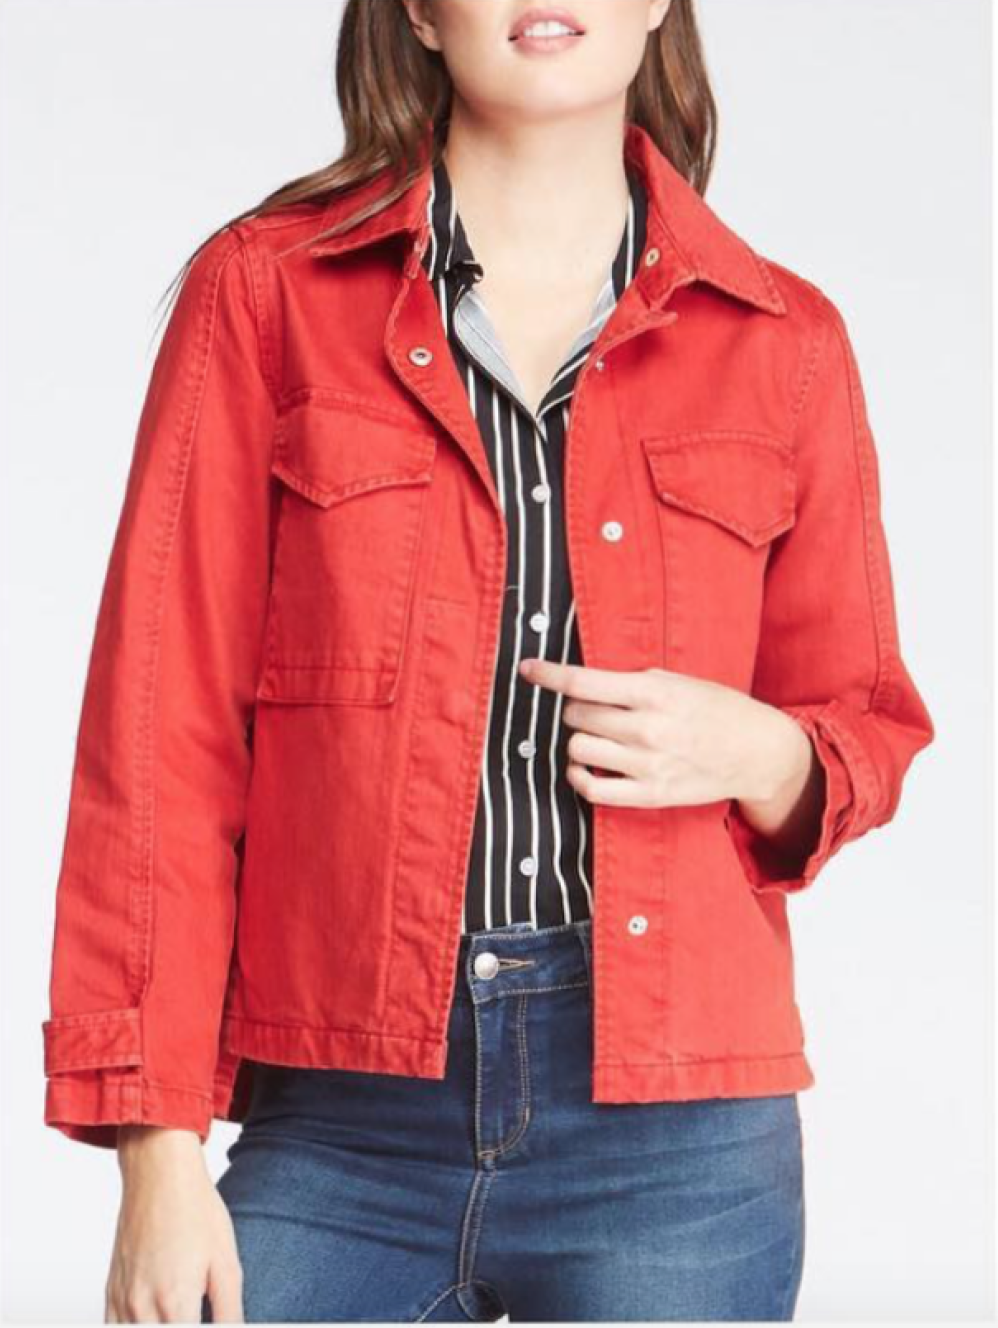 Red Denim Jacket